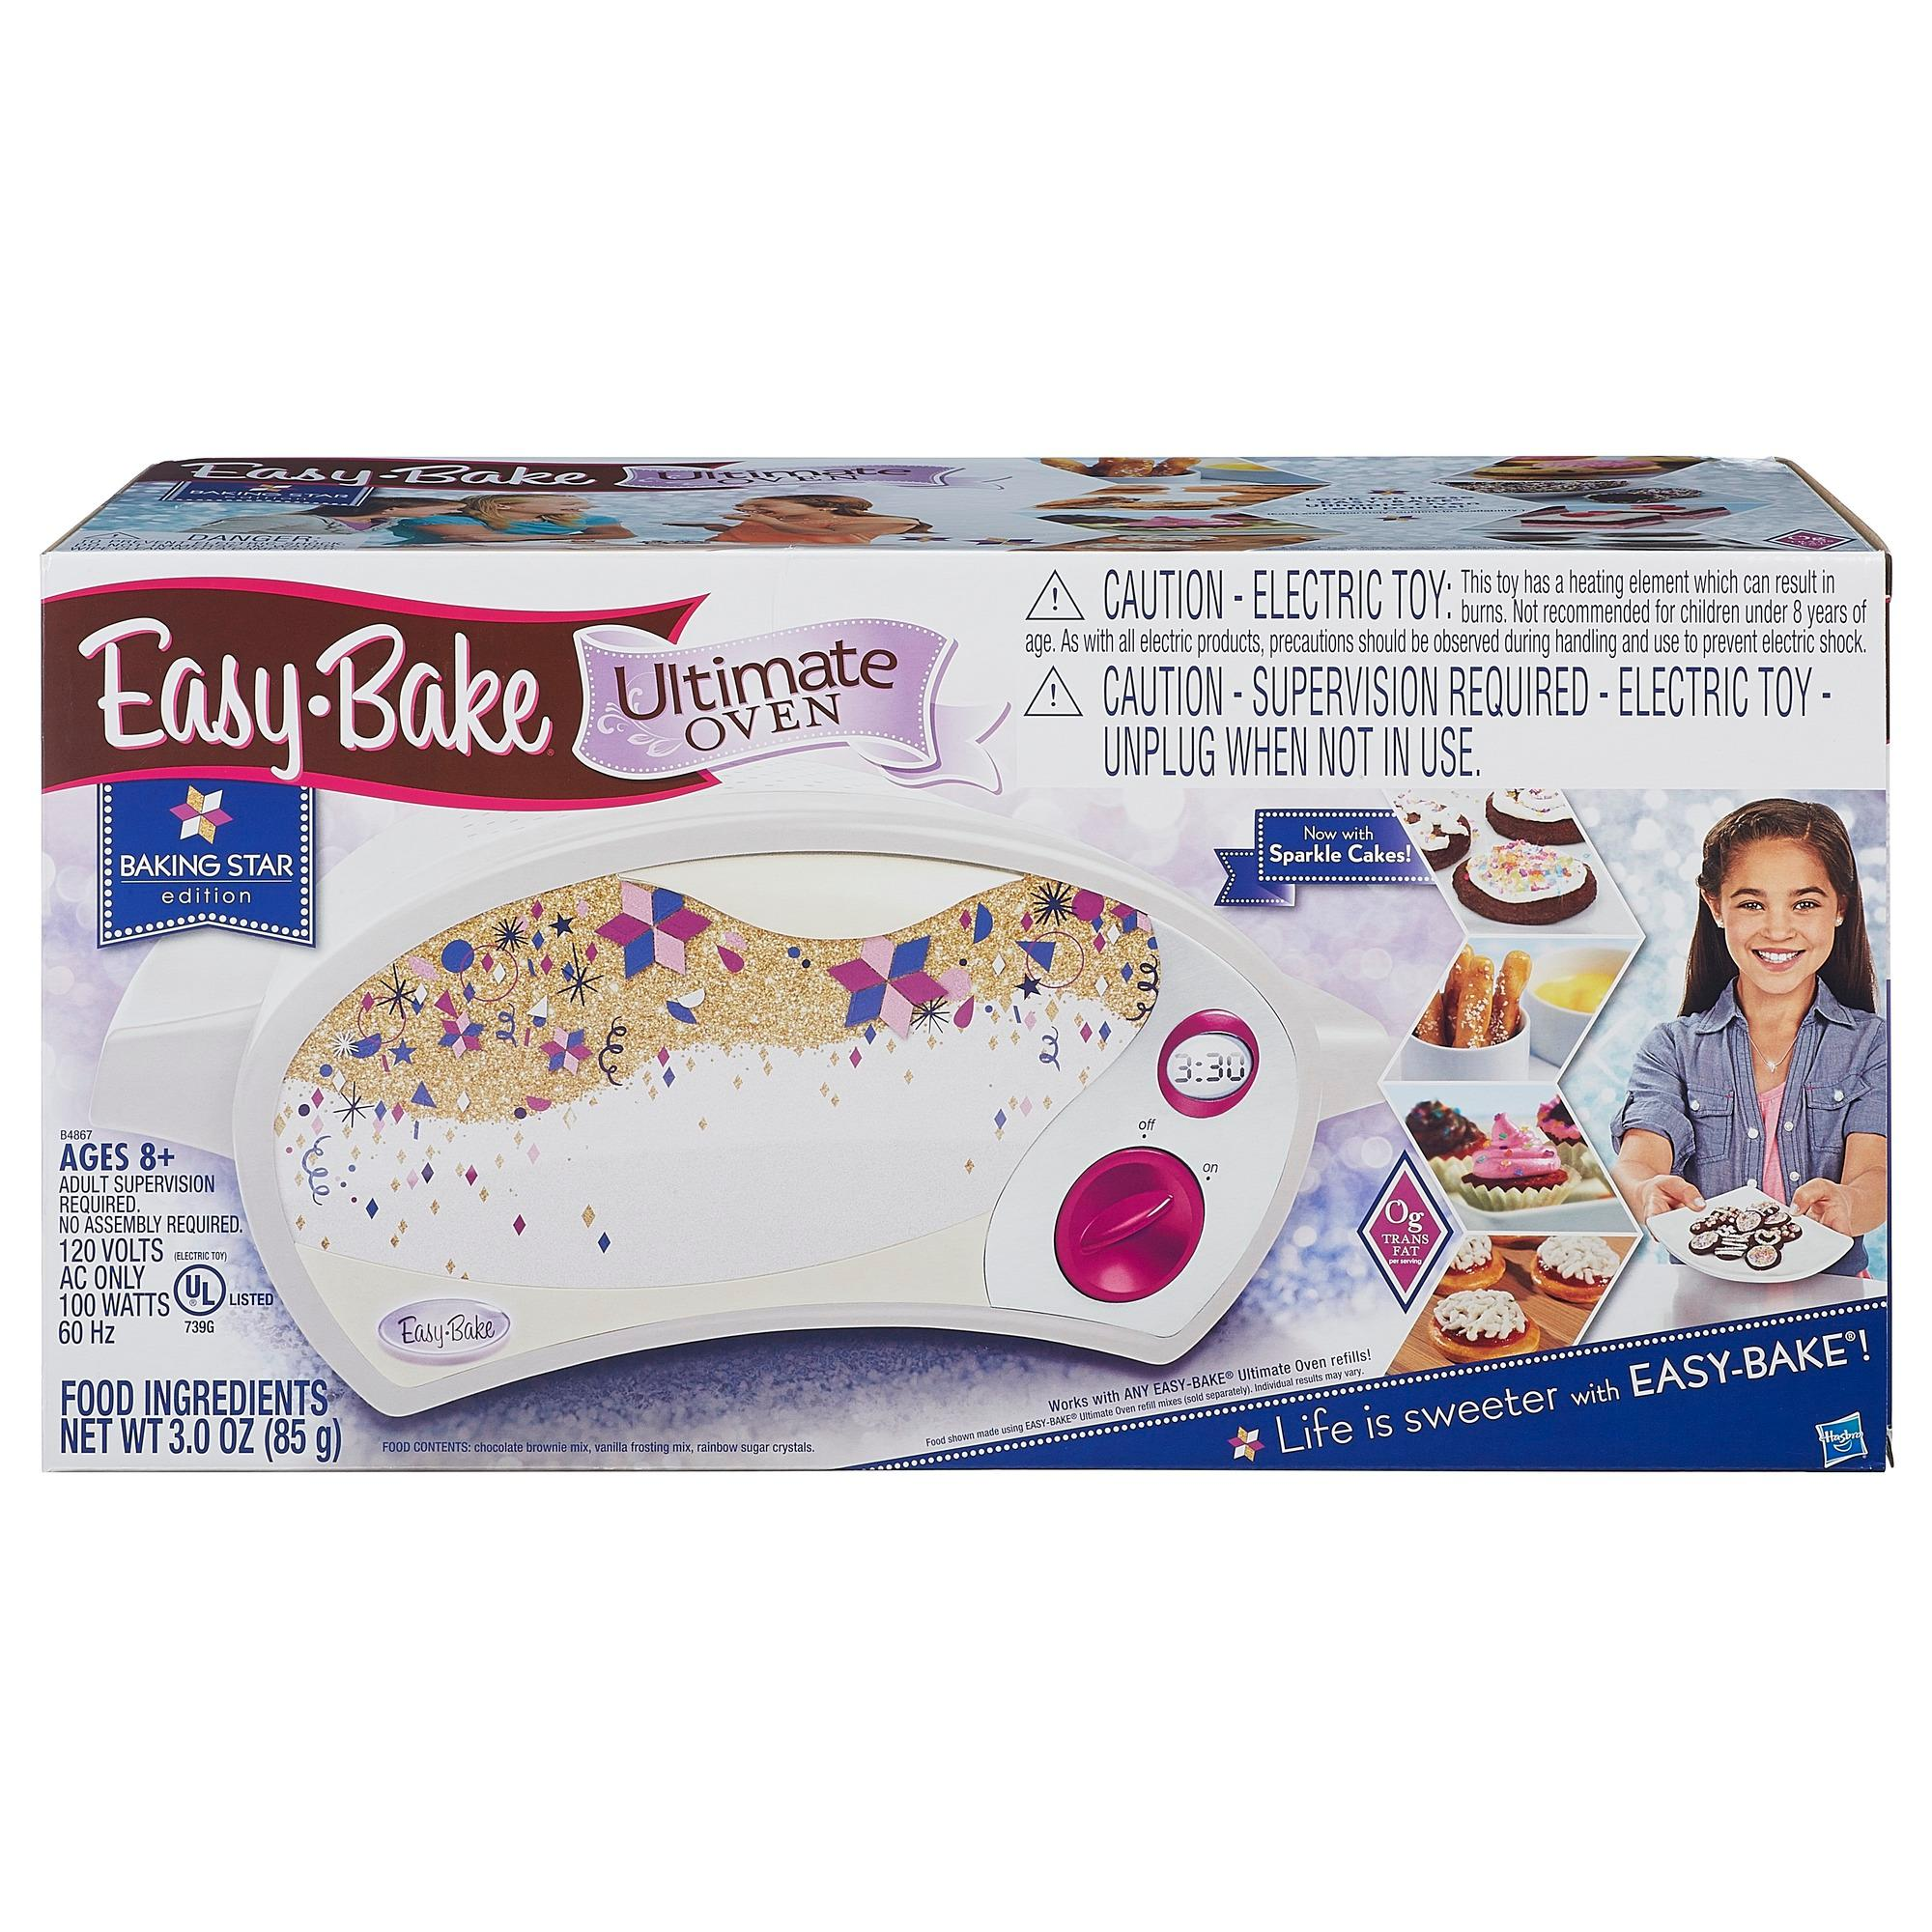 Easy Bake Ultimate Oven Chocolate Brownie Mix Instructions